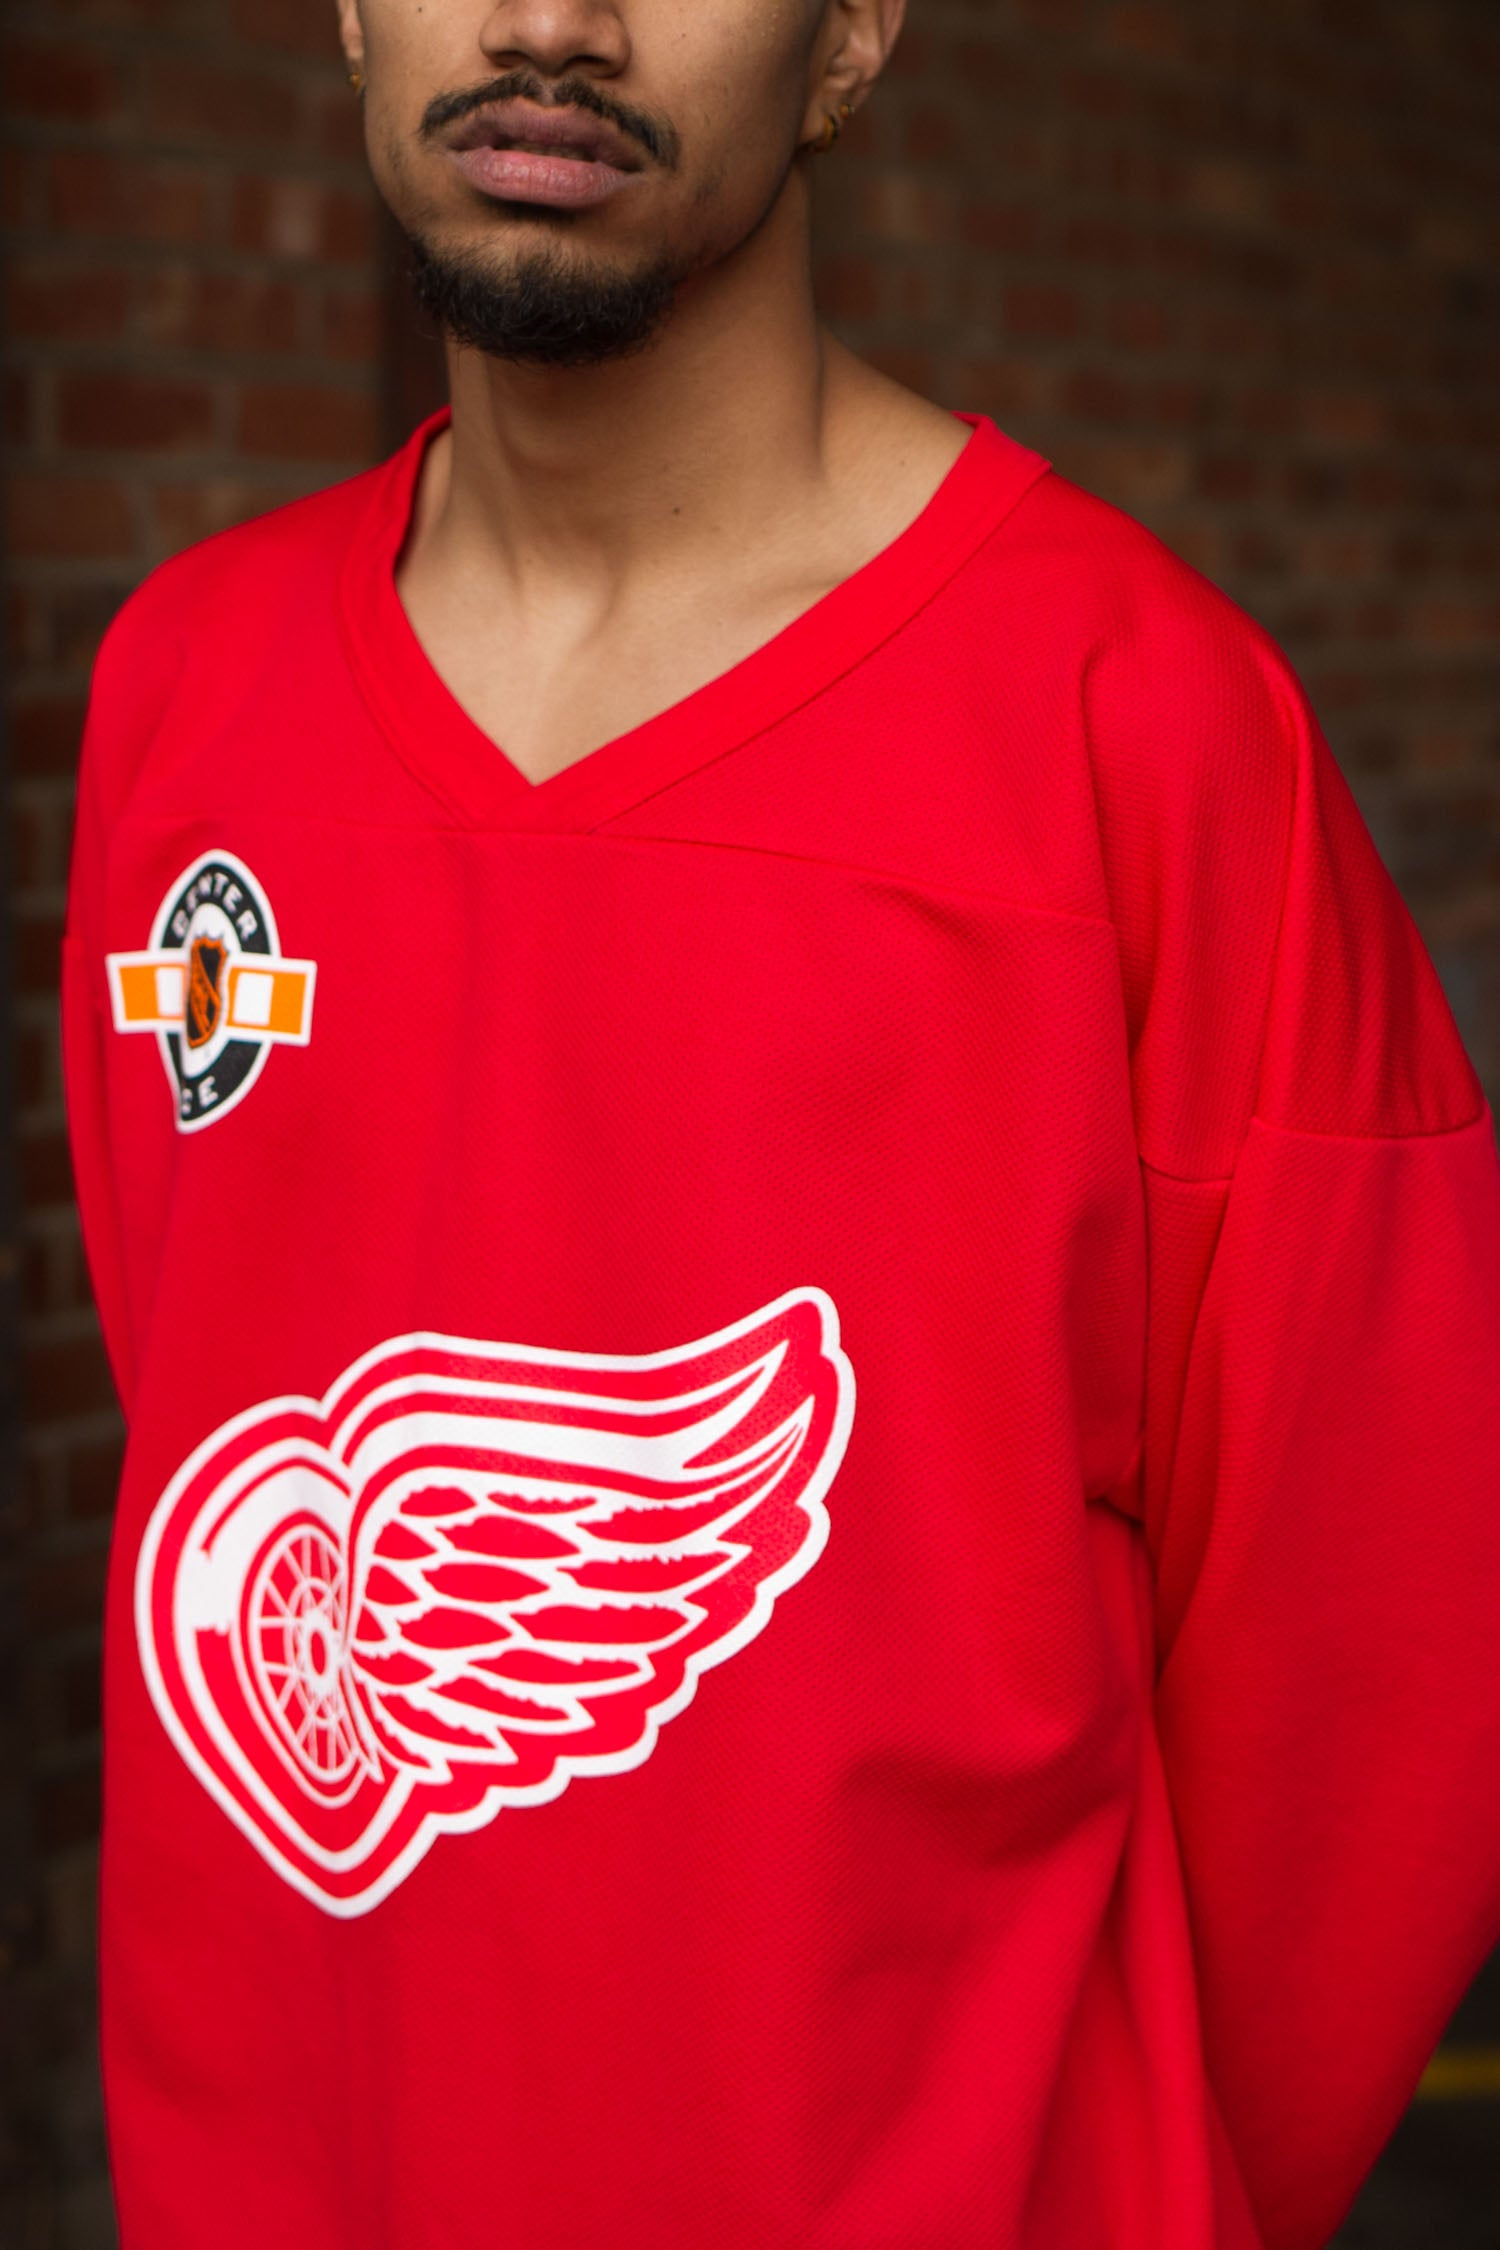 RED WINGS NFL HOCKEY JERSEY